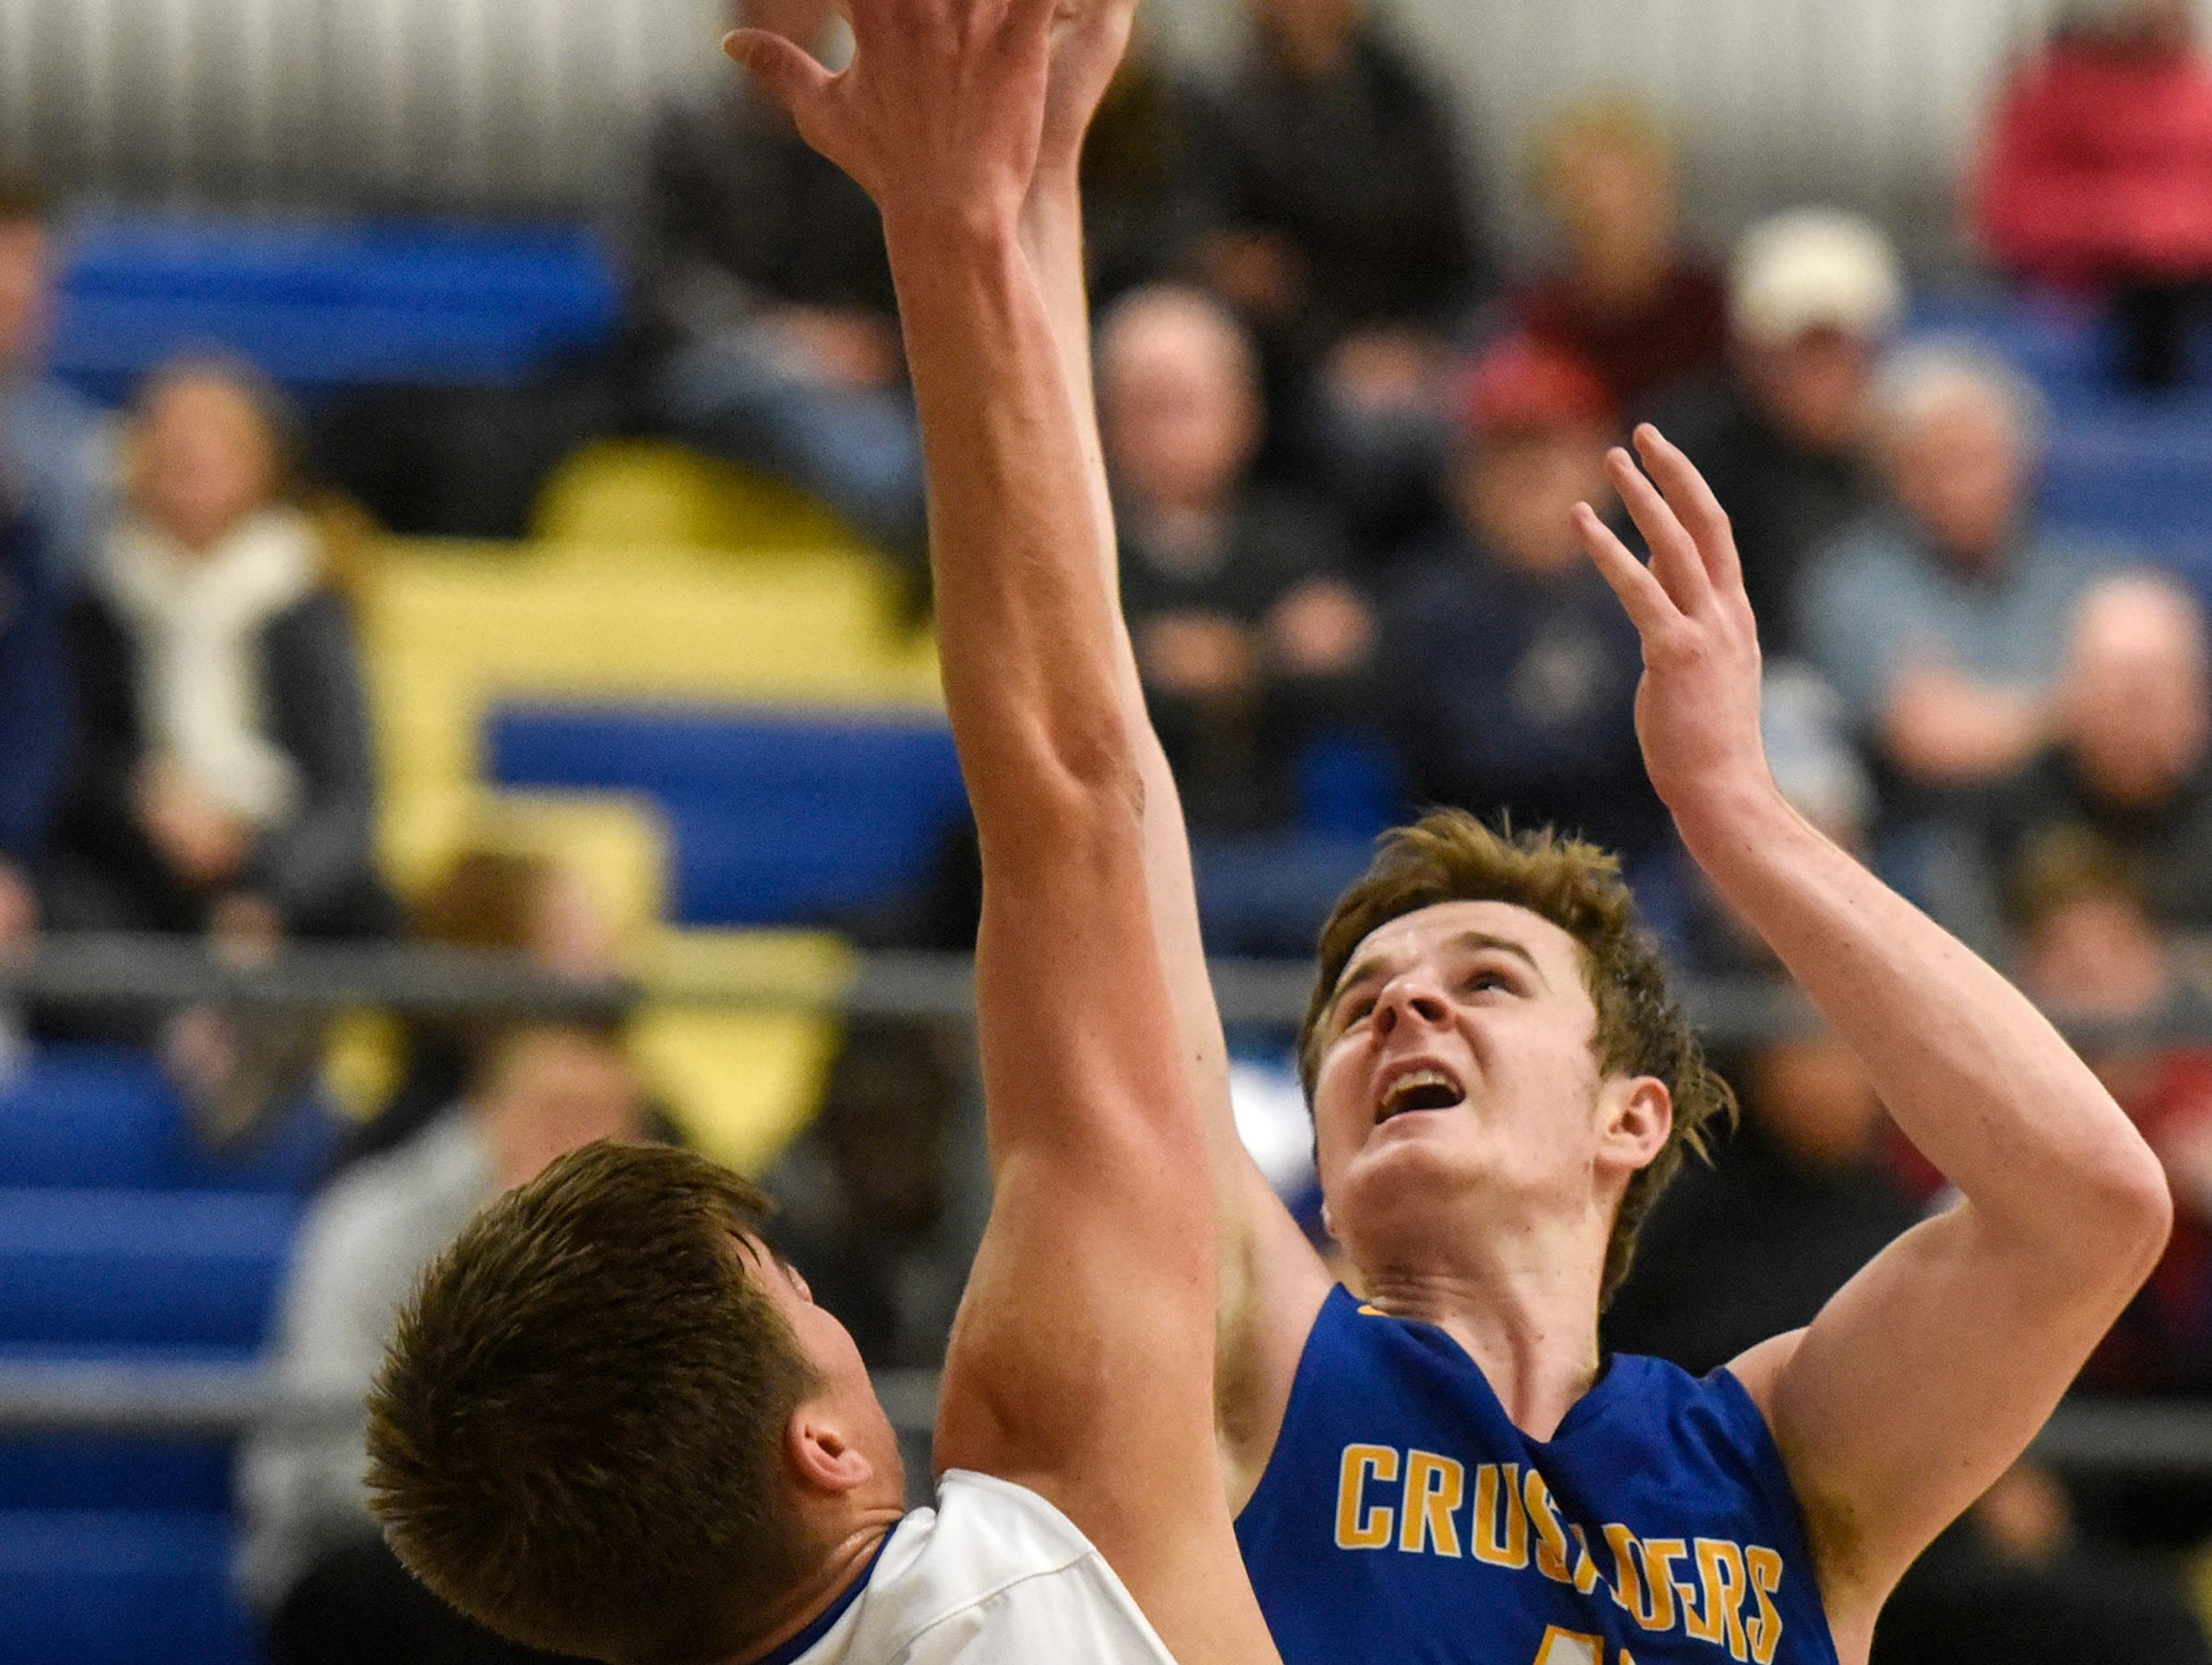 Cathedral's Nick Schaefer tries to get a shot over Luke Tillotson of Sartell during the game Tuesday, Jan. 8, at Cathedral High School in St. Cloud.